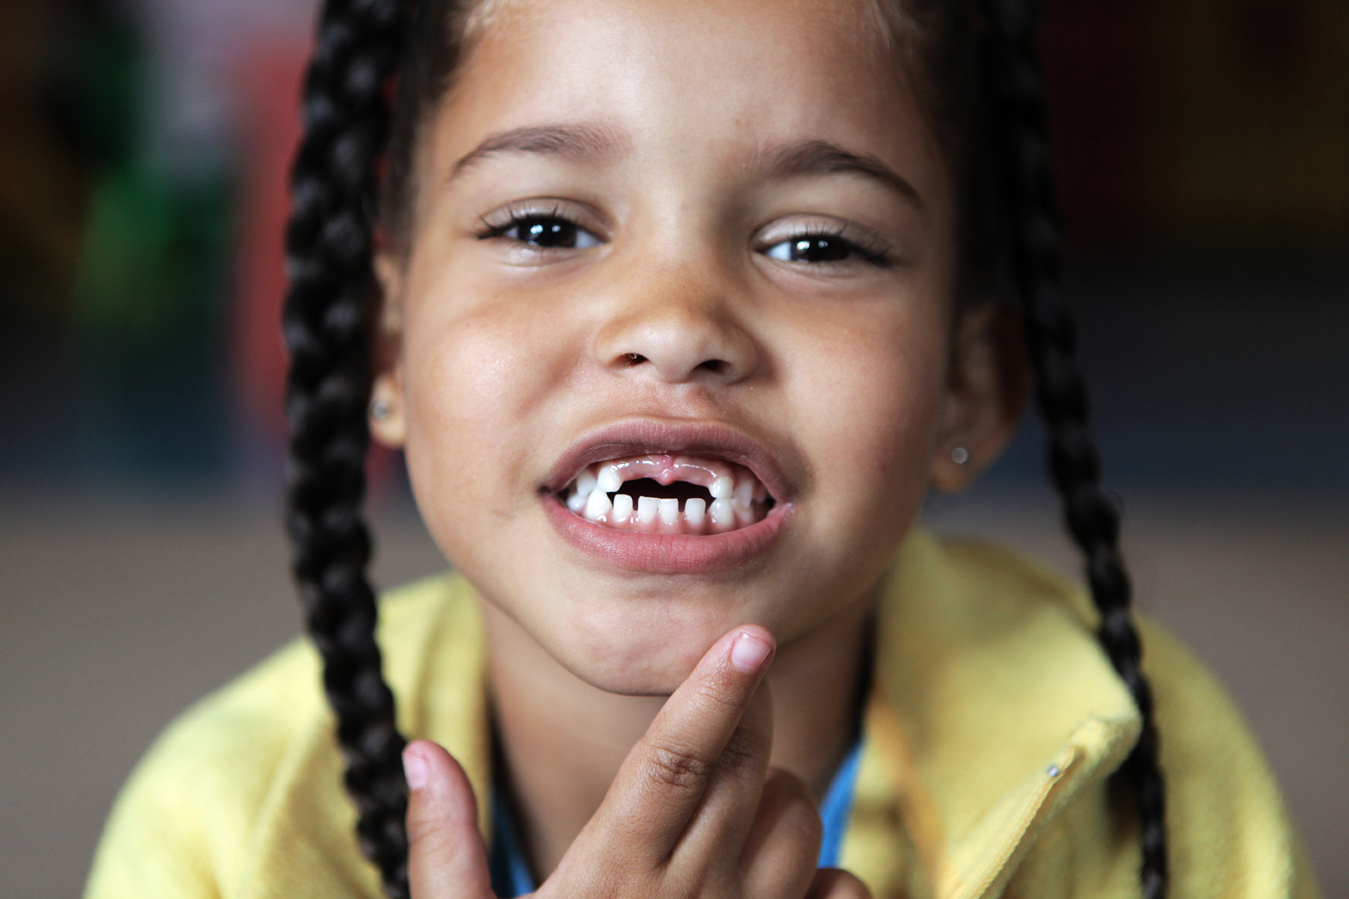 Kerry-leigh, 4, shows how she recently lost her two front teeth, at the Little David Educare Centre in Wentworth, a township on the southern side of Durban, in KwaZulu-Natal province. Over 92% of preschool children in KwaZulu-Natal attend unregistered ECD centres (crèches). Save the Children, operating in KZN for over 50 years, recognised the need to support crèches in the area with better management skills and access to learning materials, as well as running the crèche forums and supporting crèches with registration to become ECD centres.